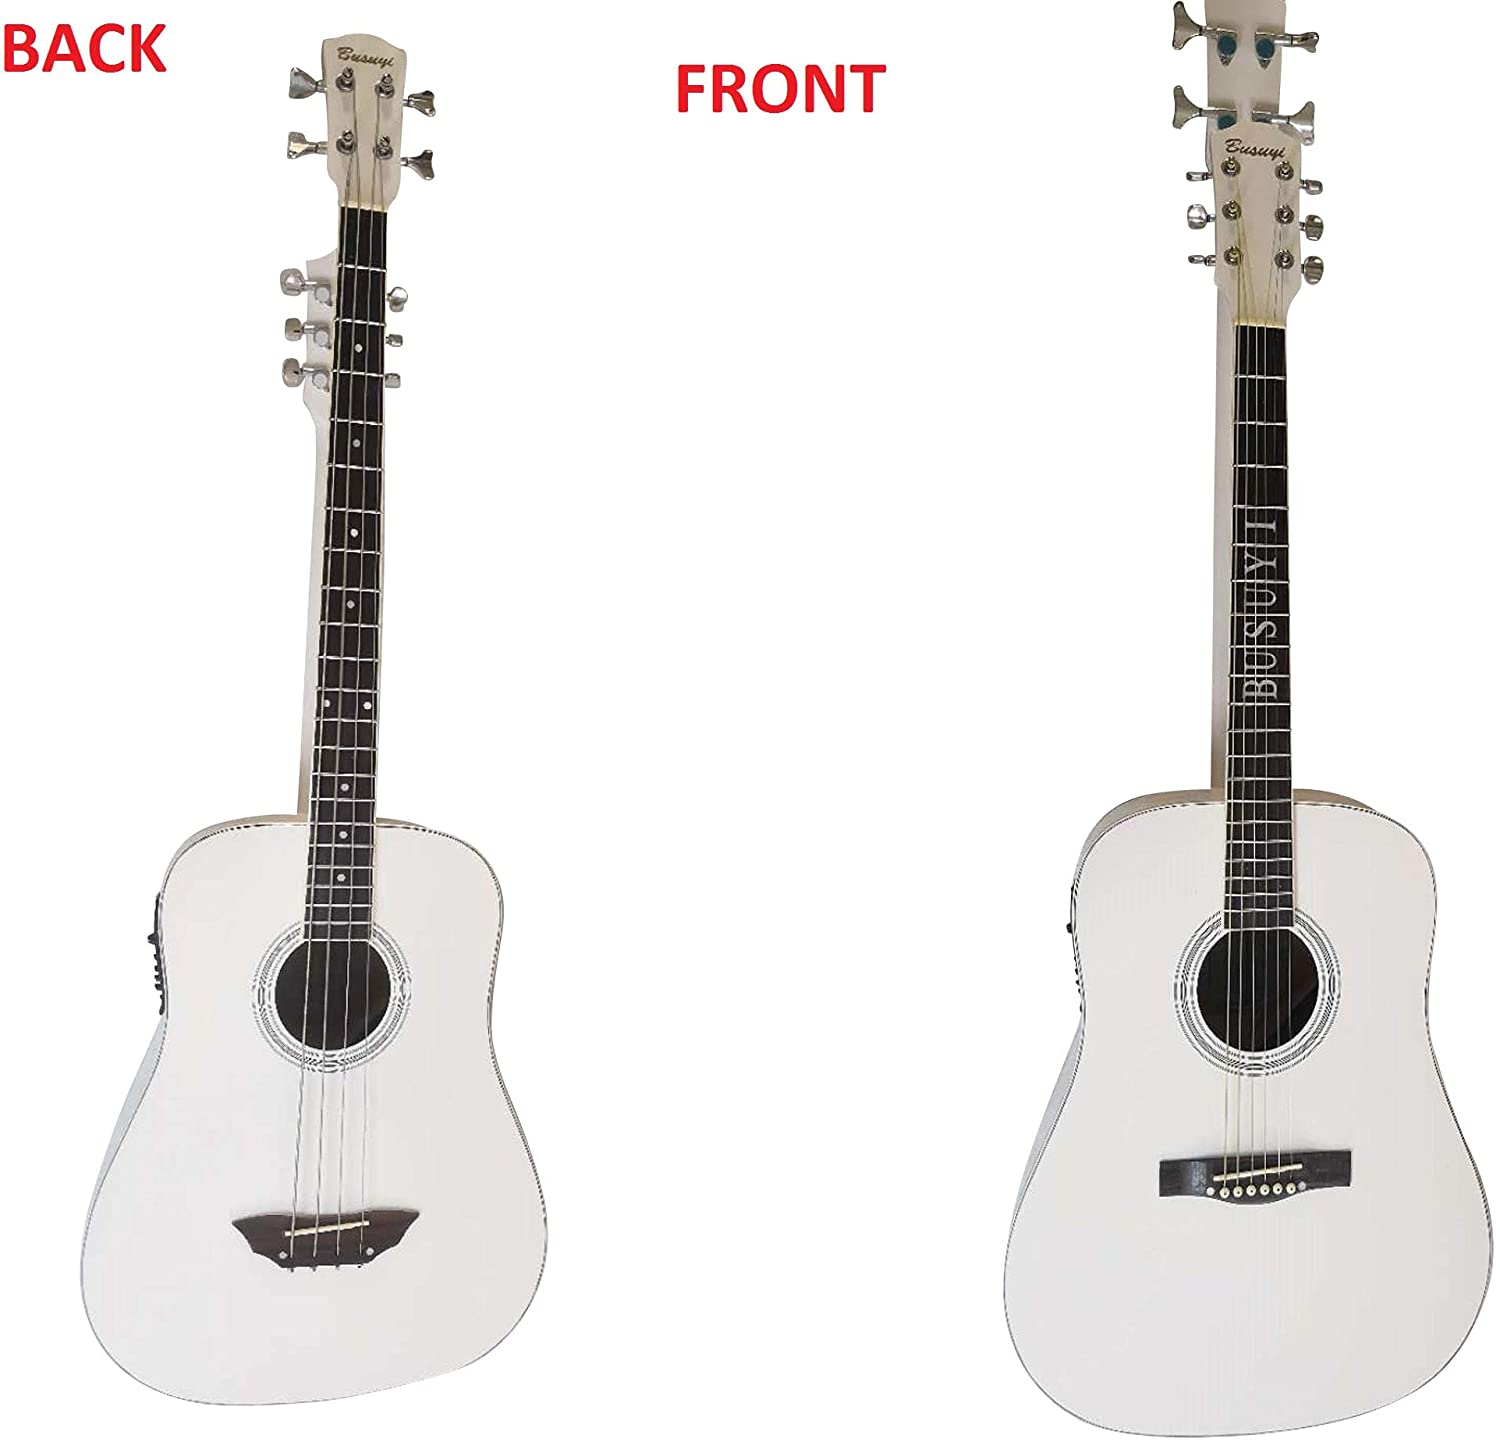 4 Strings Bass/ 6 Strings Acoustic Double Neck,Double Sided Busuyi Guitar 2019